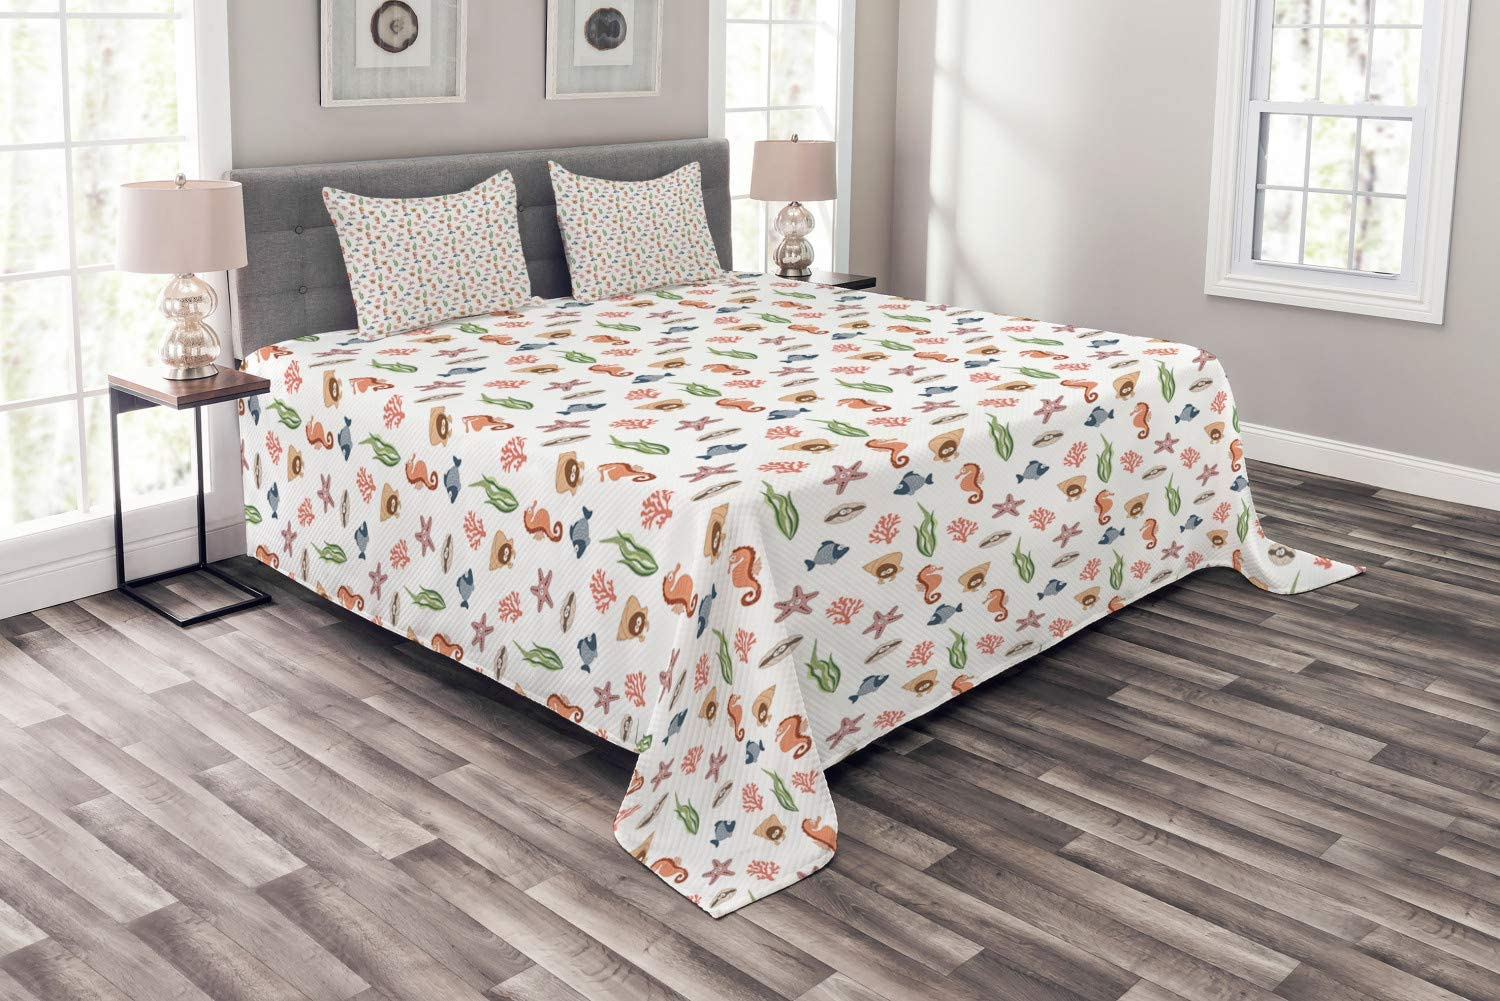 Ambesonne Sea Life Max 48% OFF Bedspread Various and Colorful Animer price revision Creatures